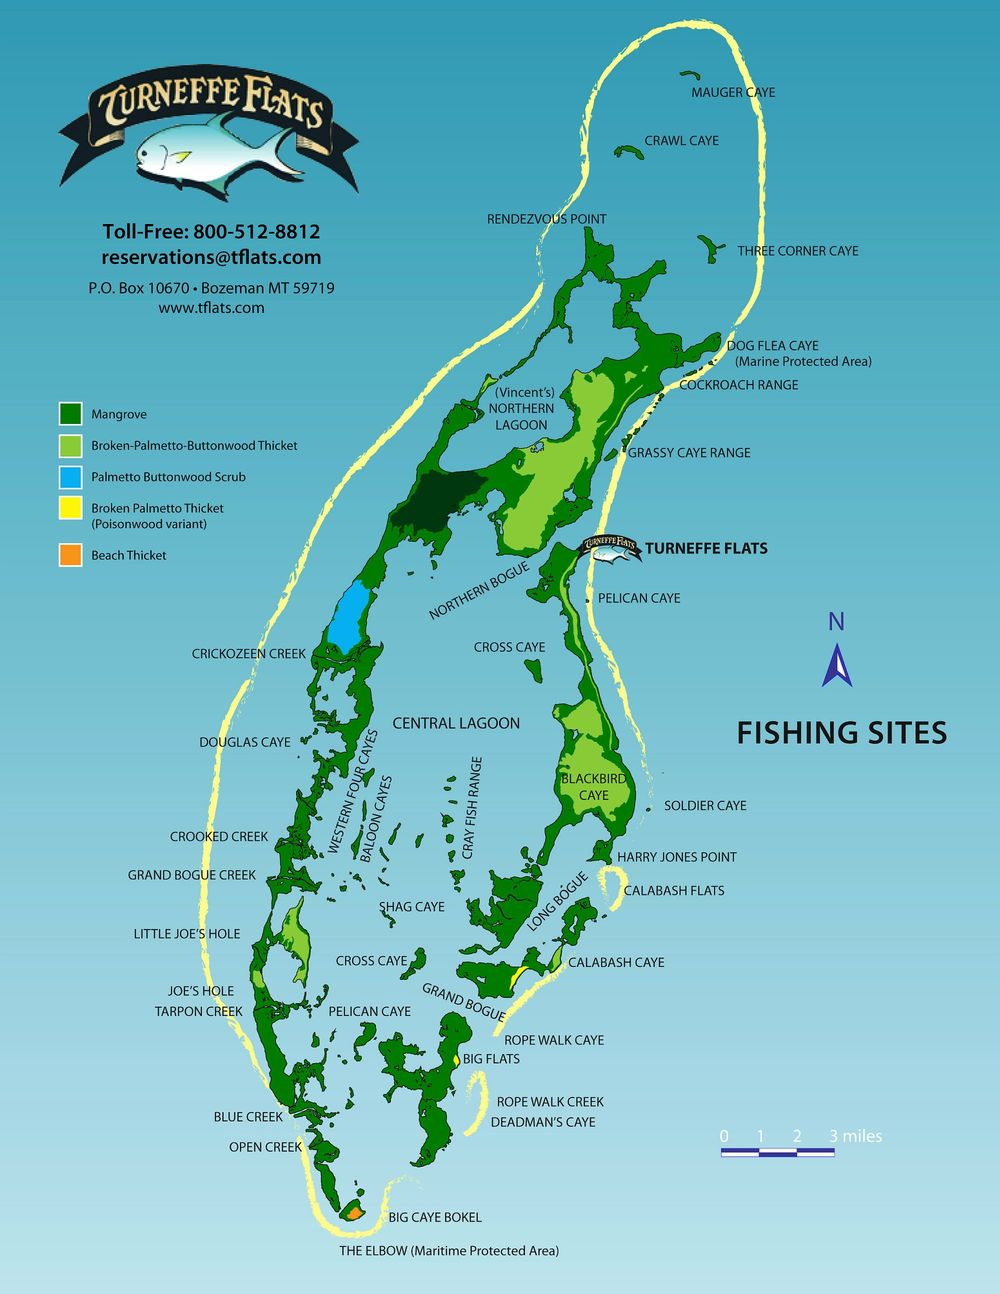 The best bonefish, permit, and tarpon fishing locations in Belize.